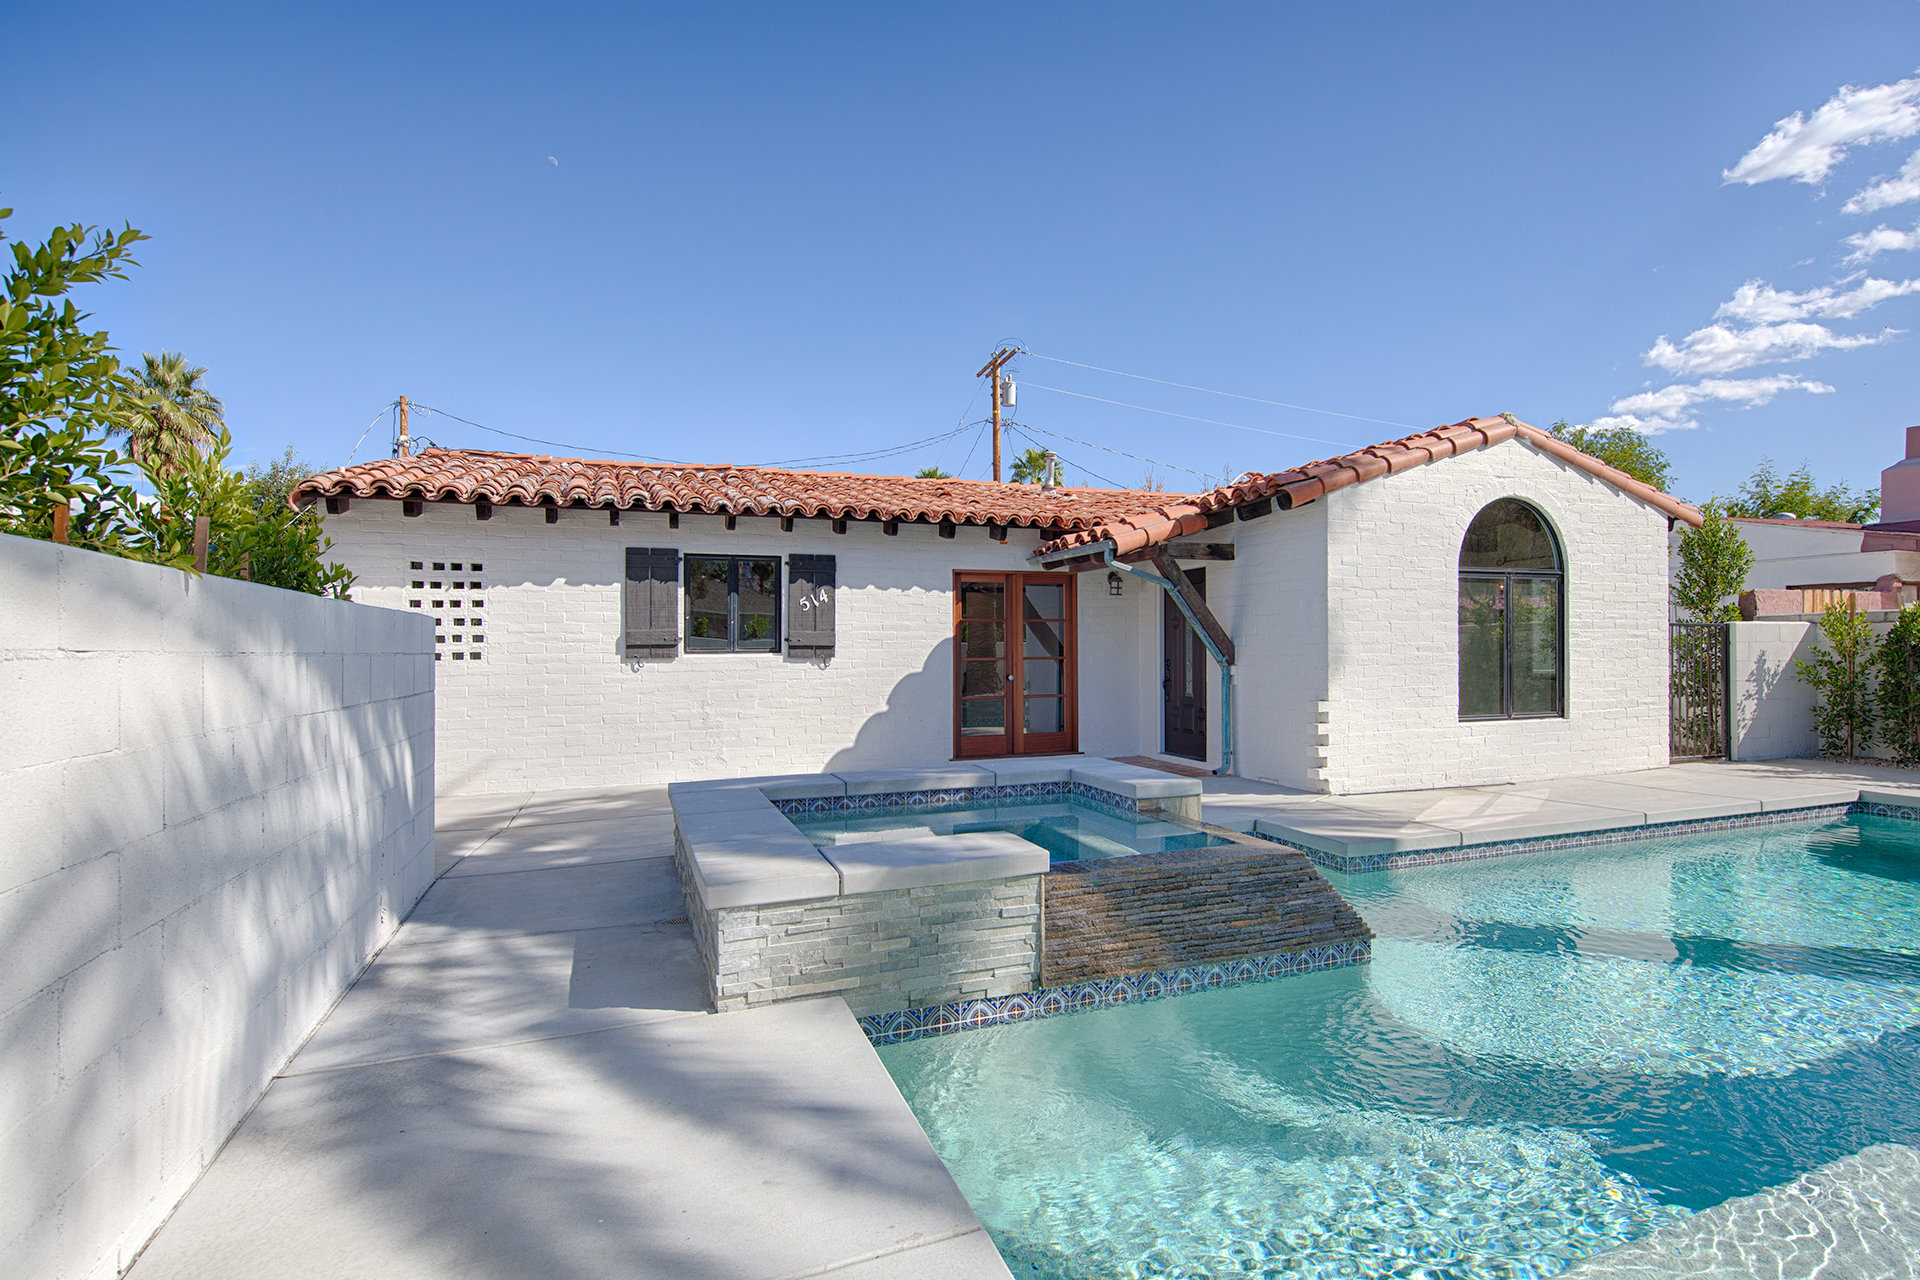 A Spanish home in the Warm Sands neighborhood of Palm Springs, California